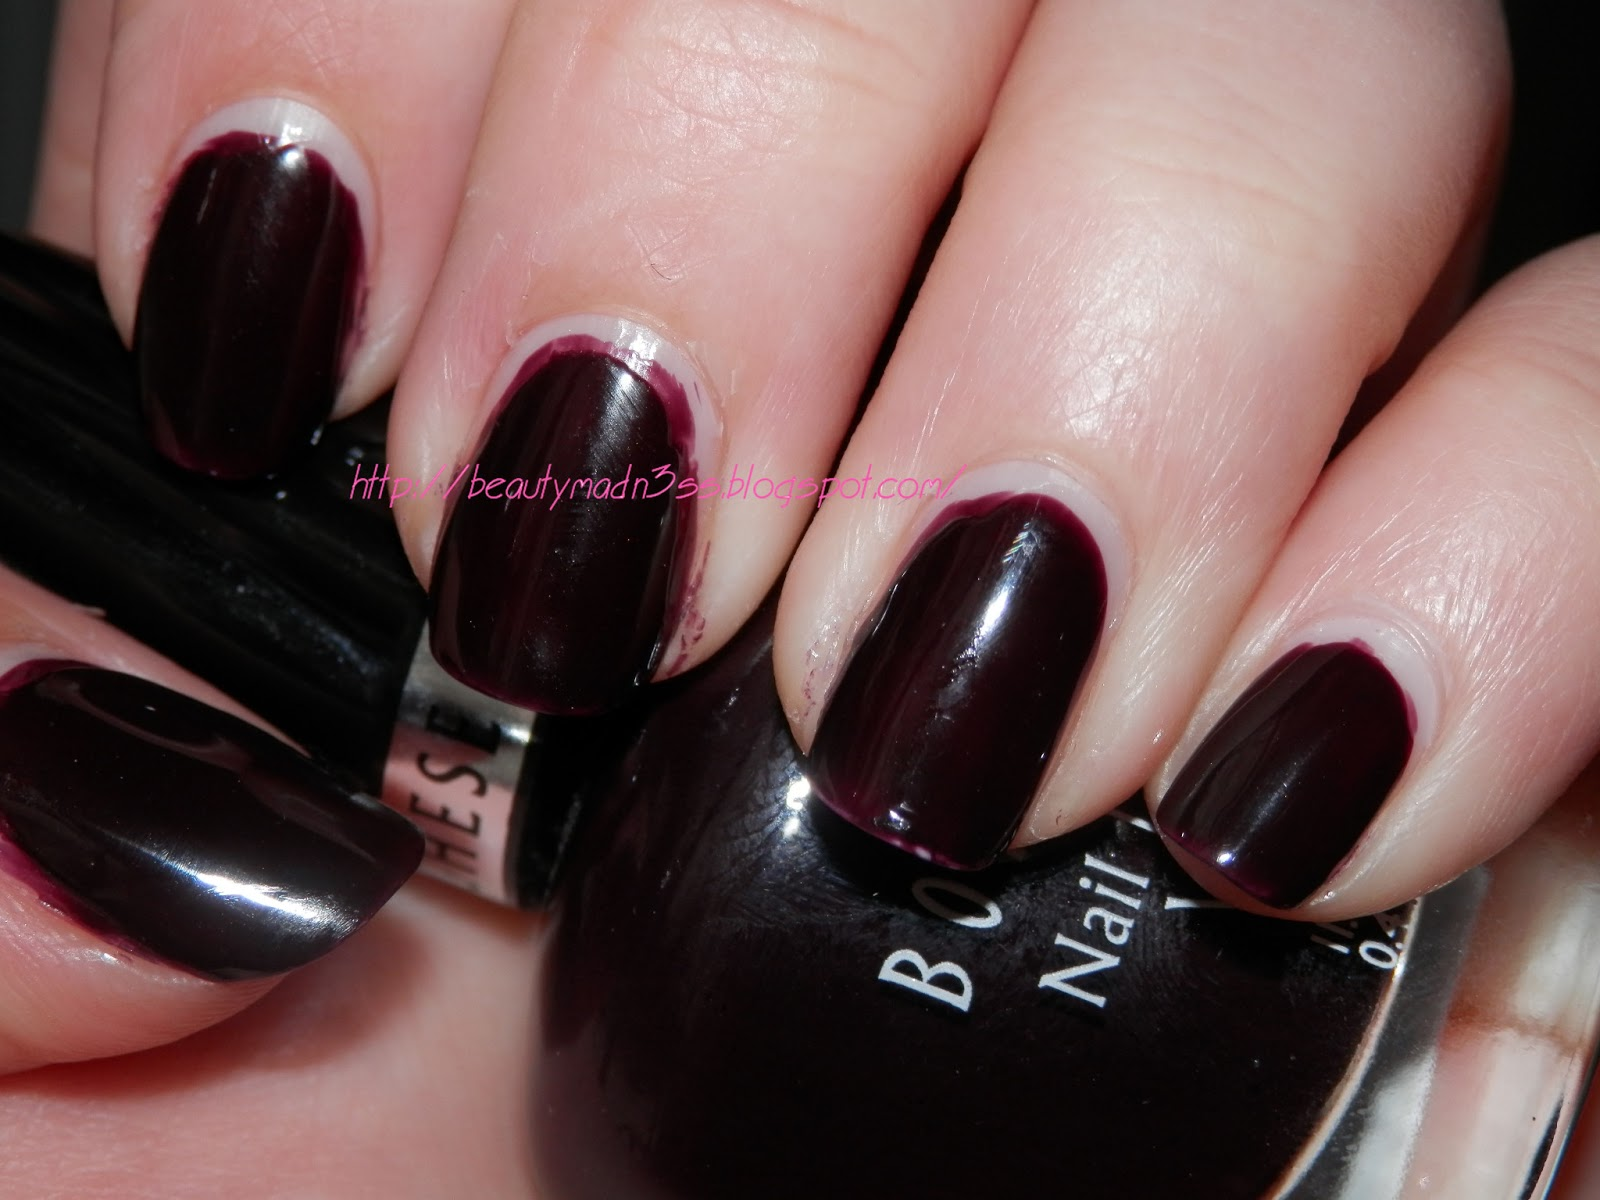 Borghese Carnevale Grape swatch